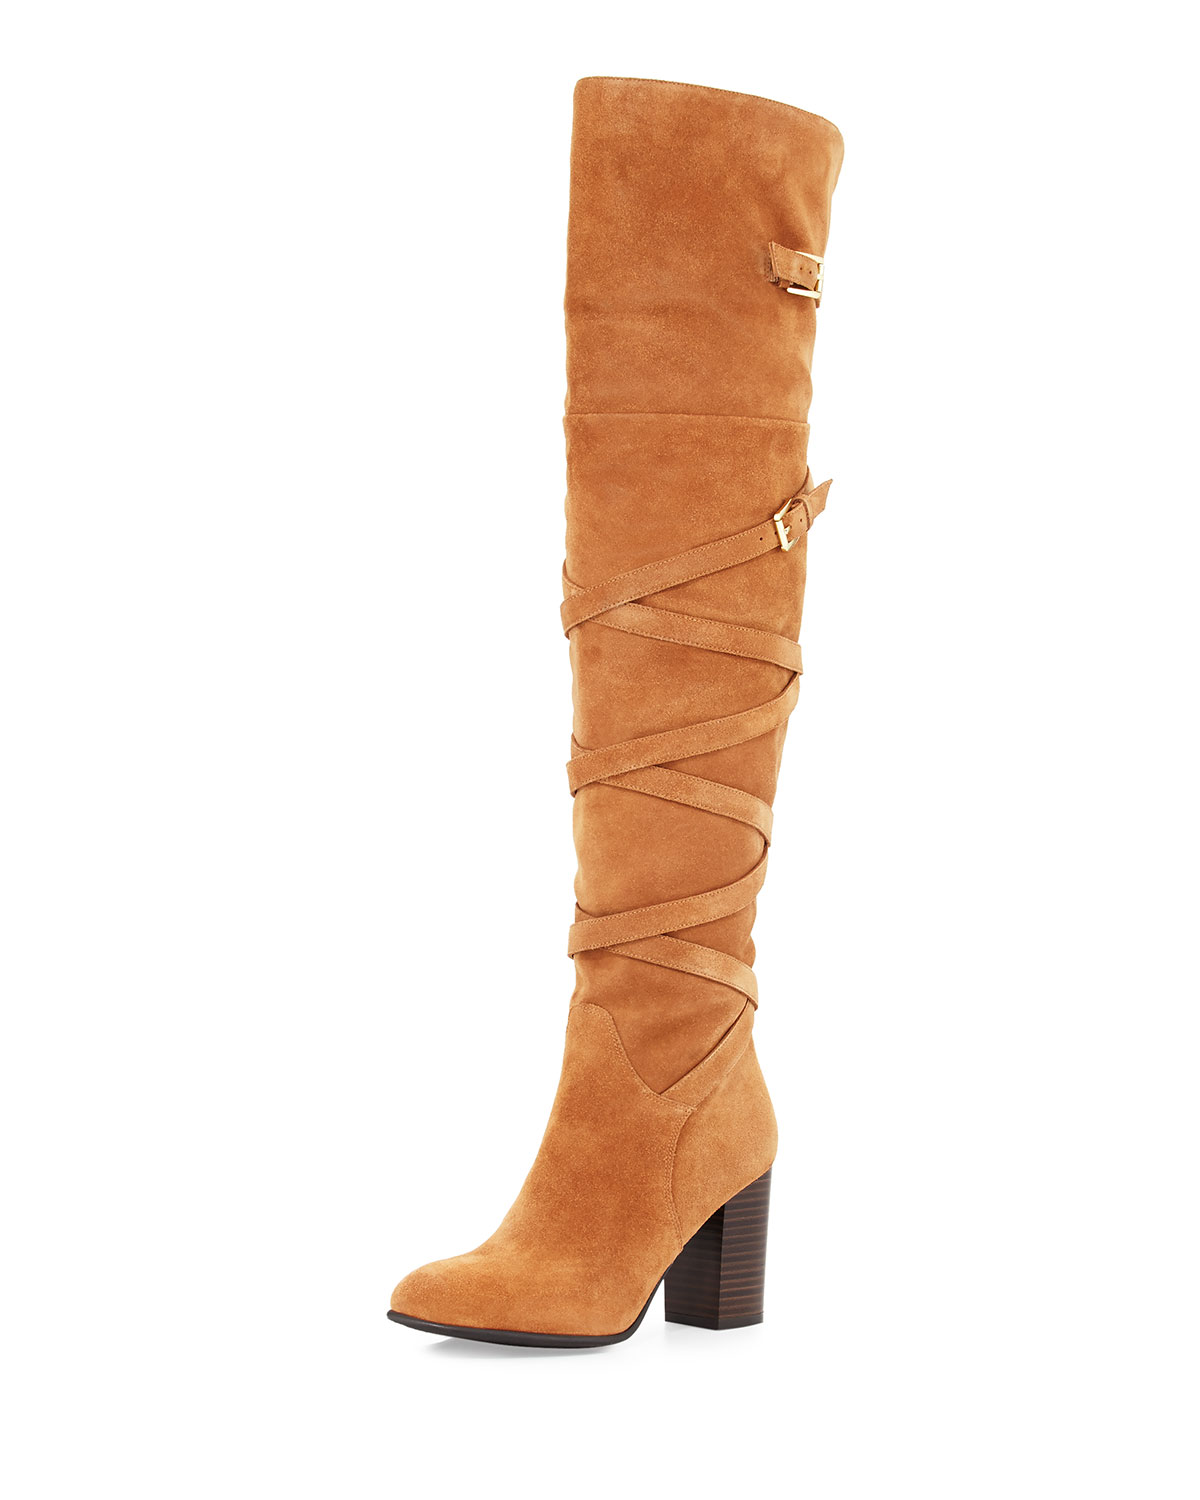 4c12f050d380 Sam Edelman Sable Strappy Suede Over-the-Knee Boots